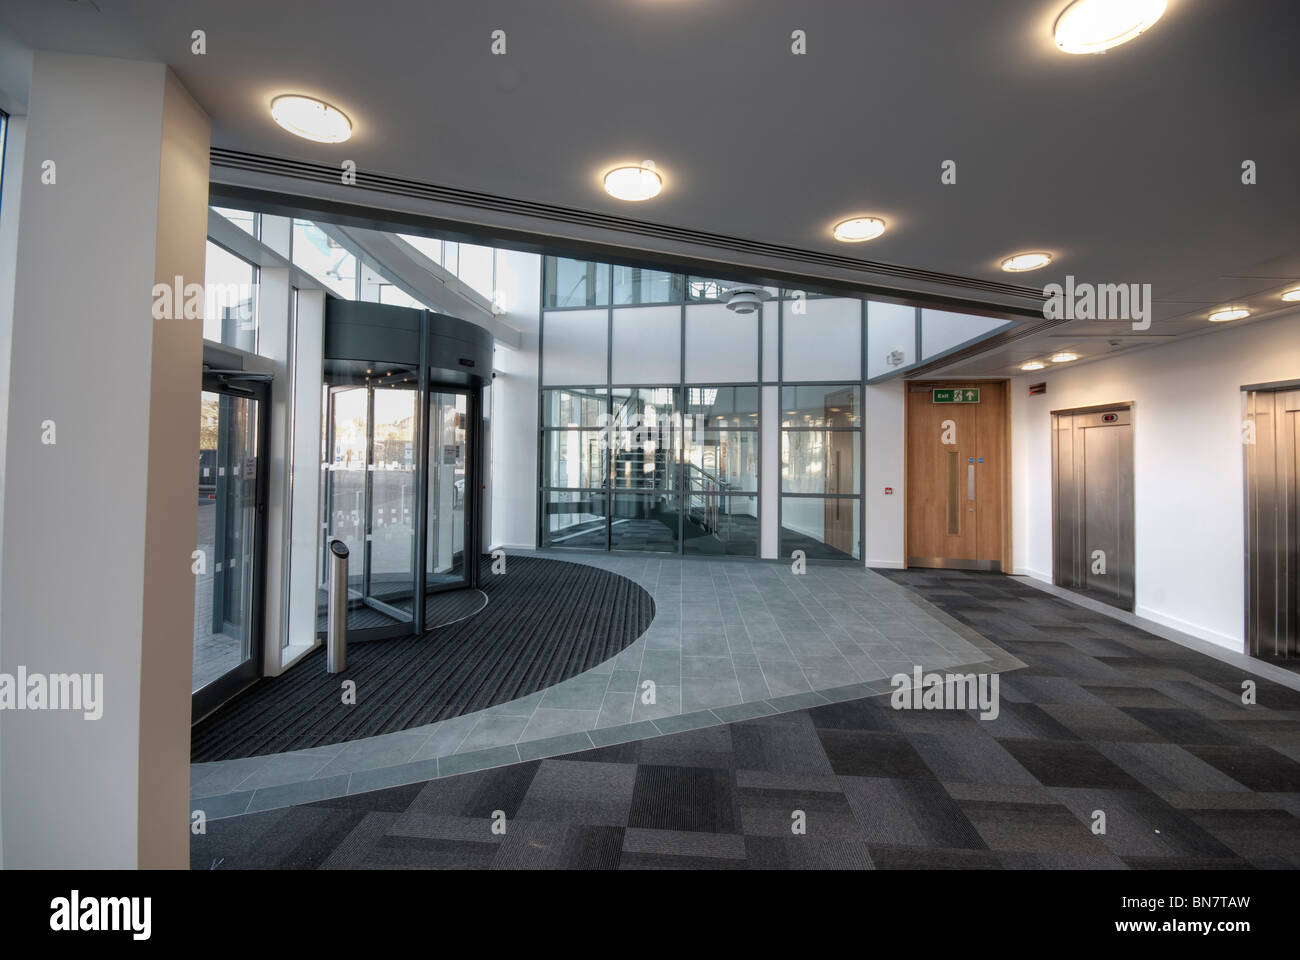 Modern office reception entrance without people - Stock Image